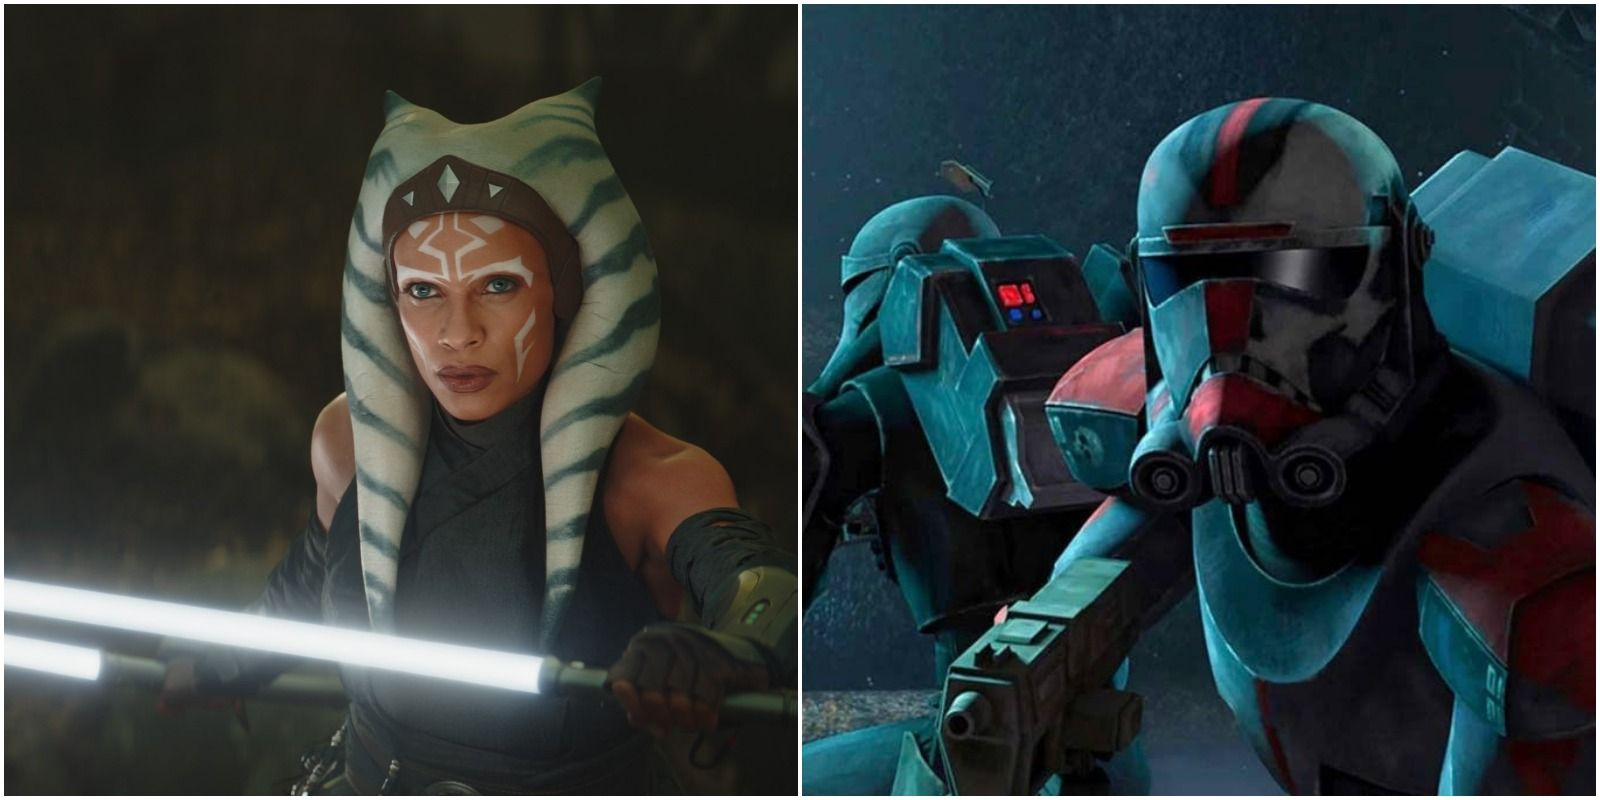 Star Wars: 9 Most-Anticipated Upcoming Disney+ Shows, Ranked